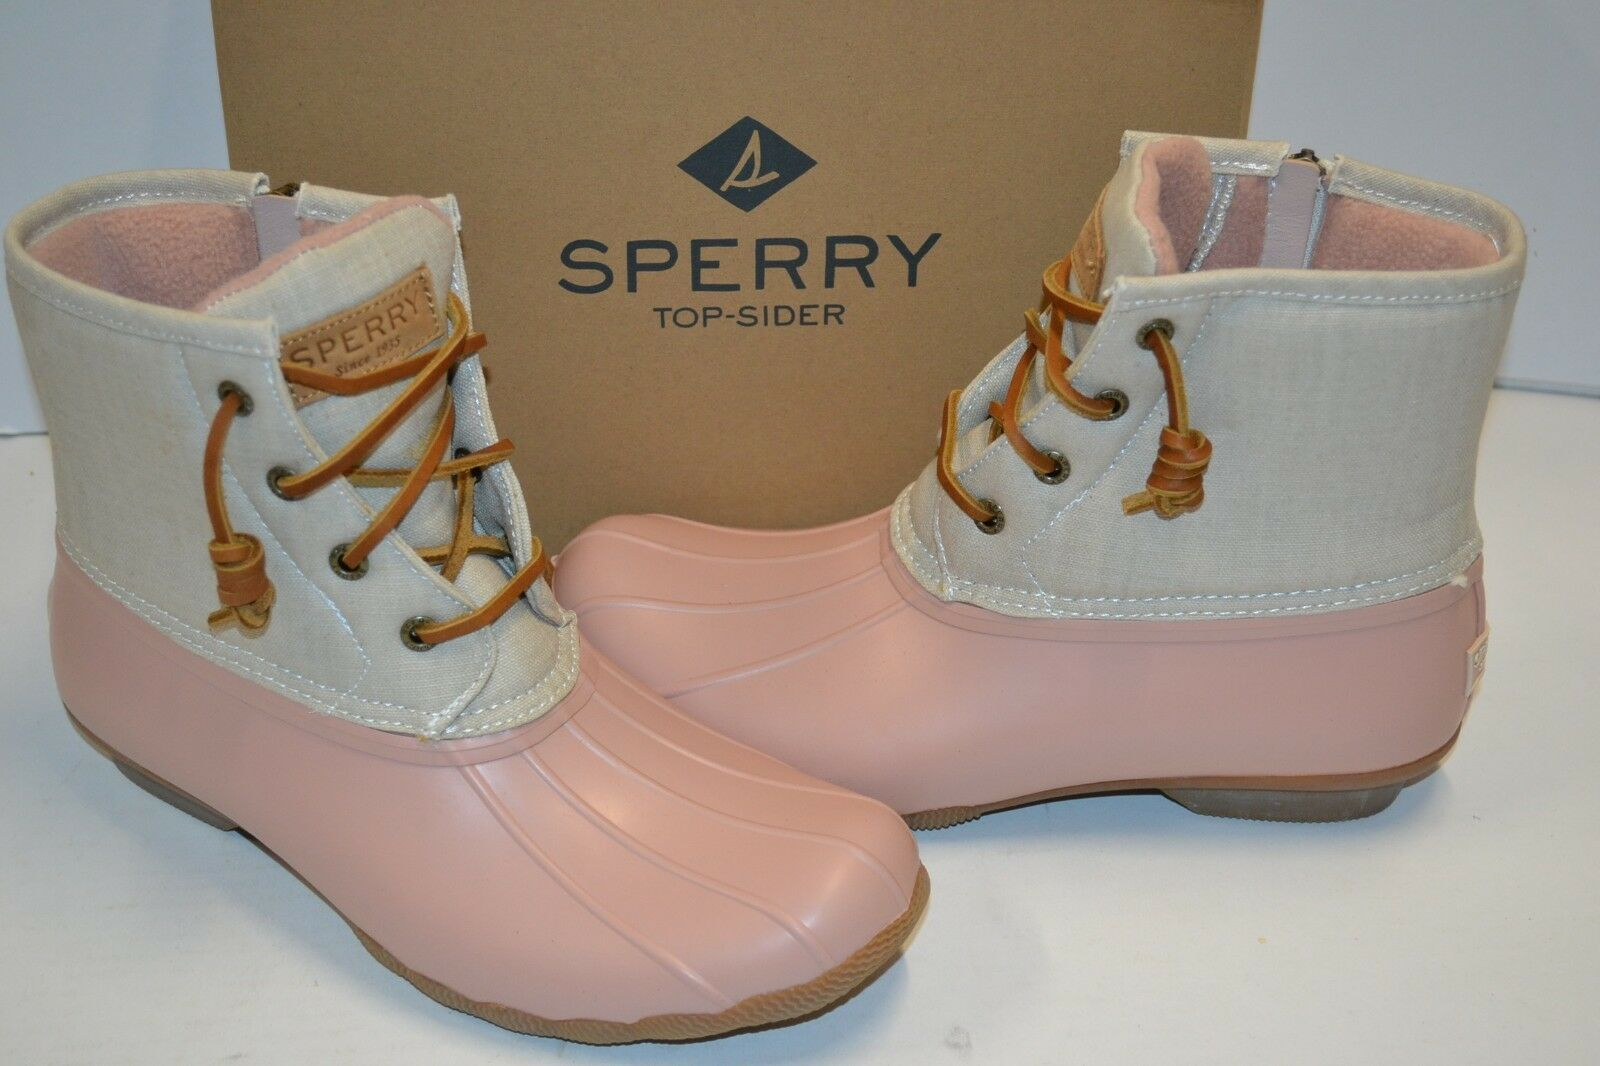 SPERRY top-sider canvas duck boots saltwater ROSE/OAT womens 10 M NEW STS80410